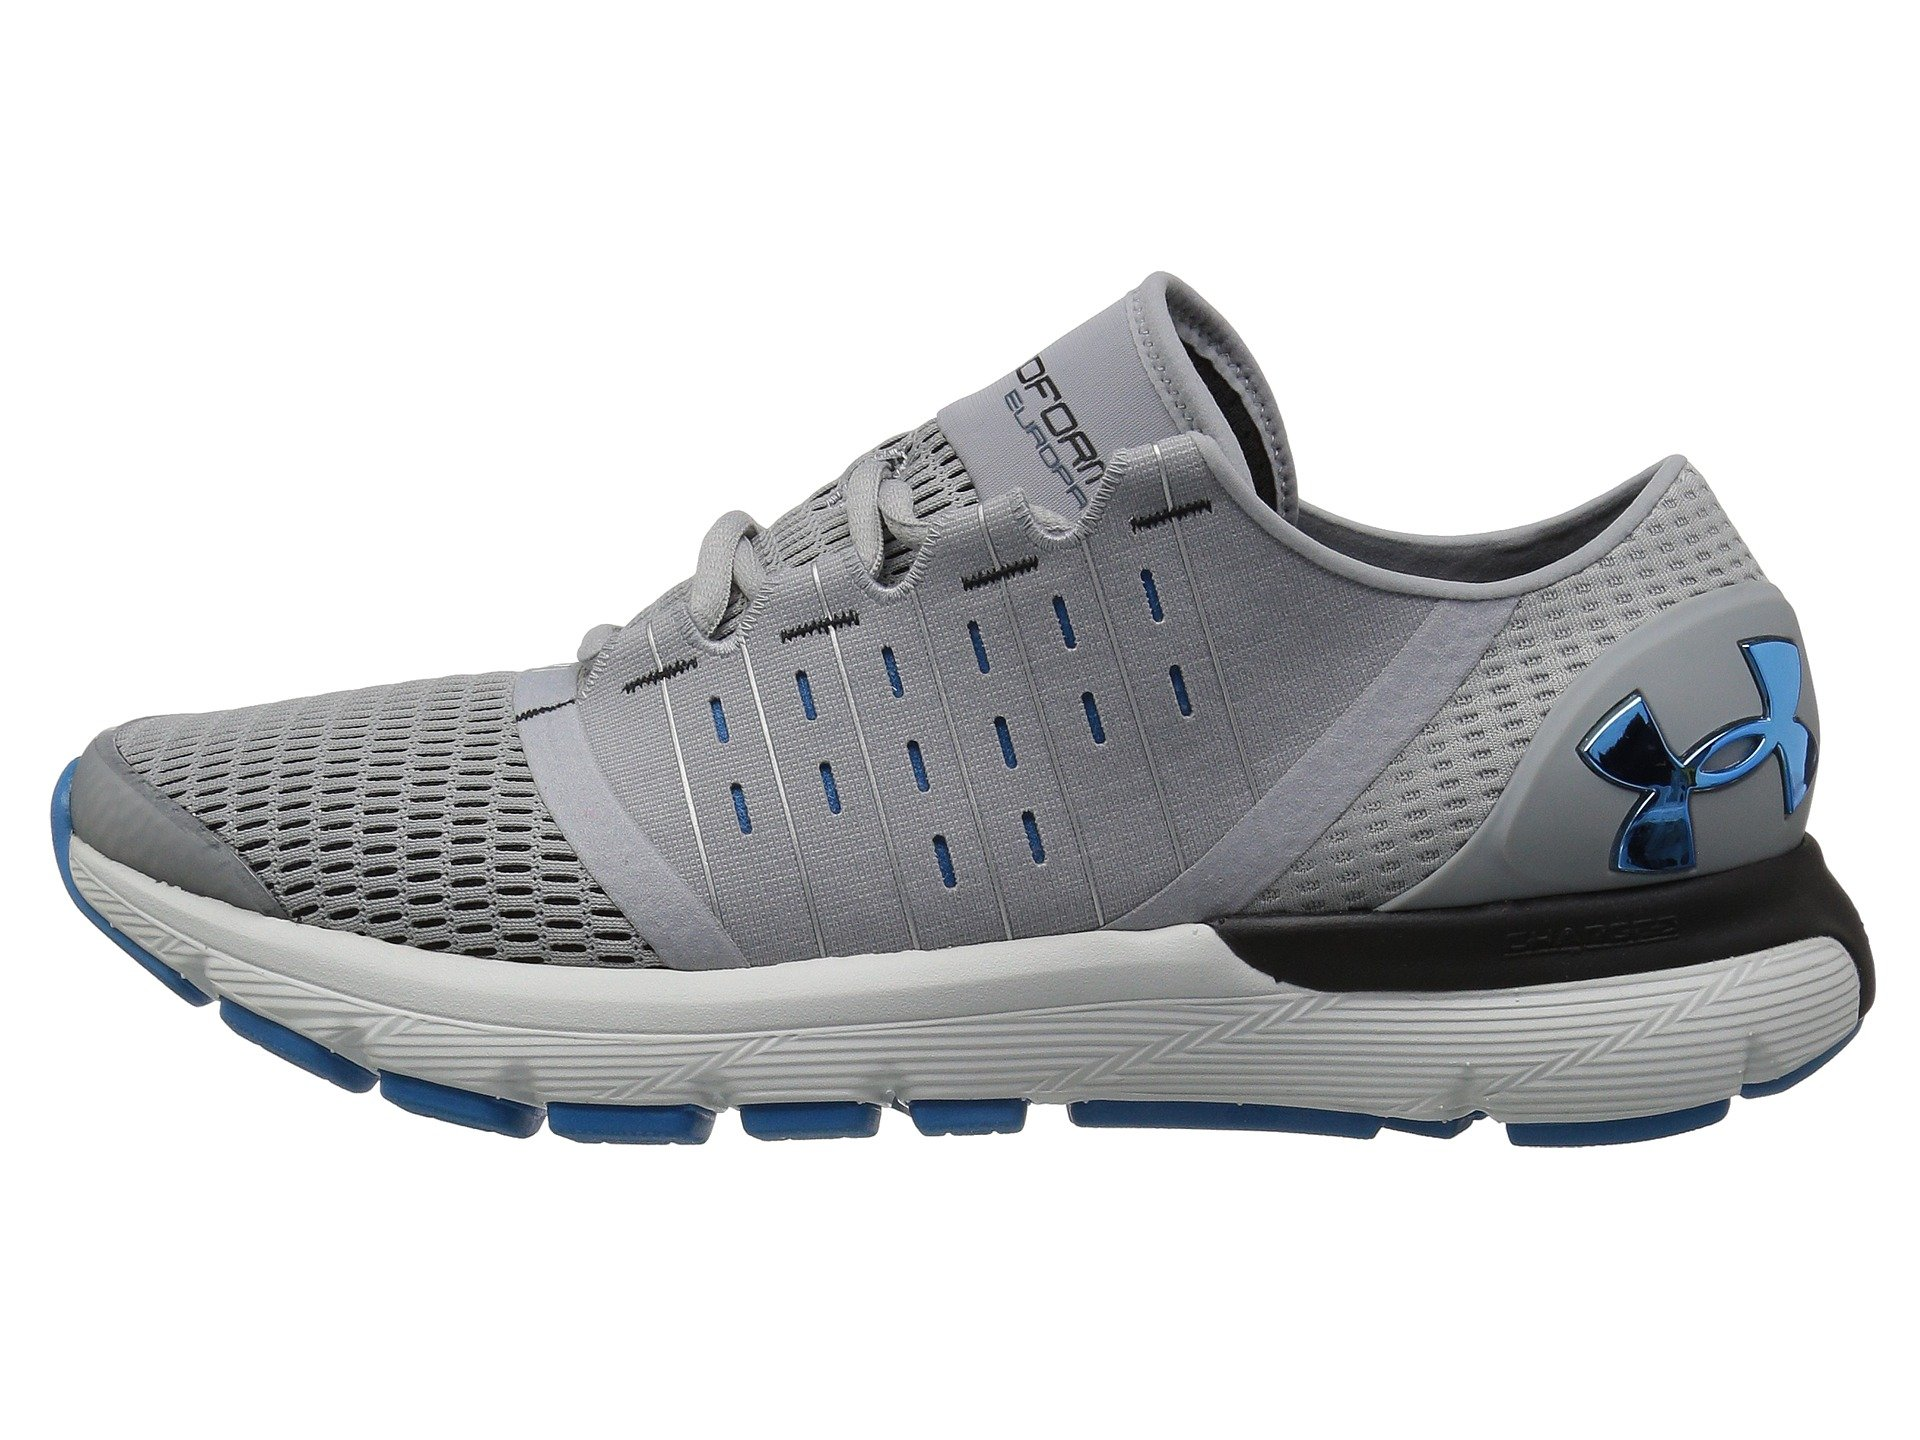 ce8349808 Under Armour Running Shoes - 9 Best Shoes from Under Armour